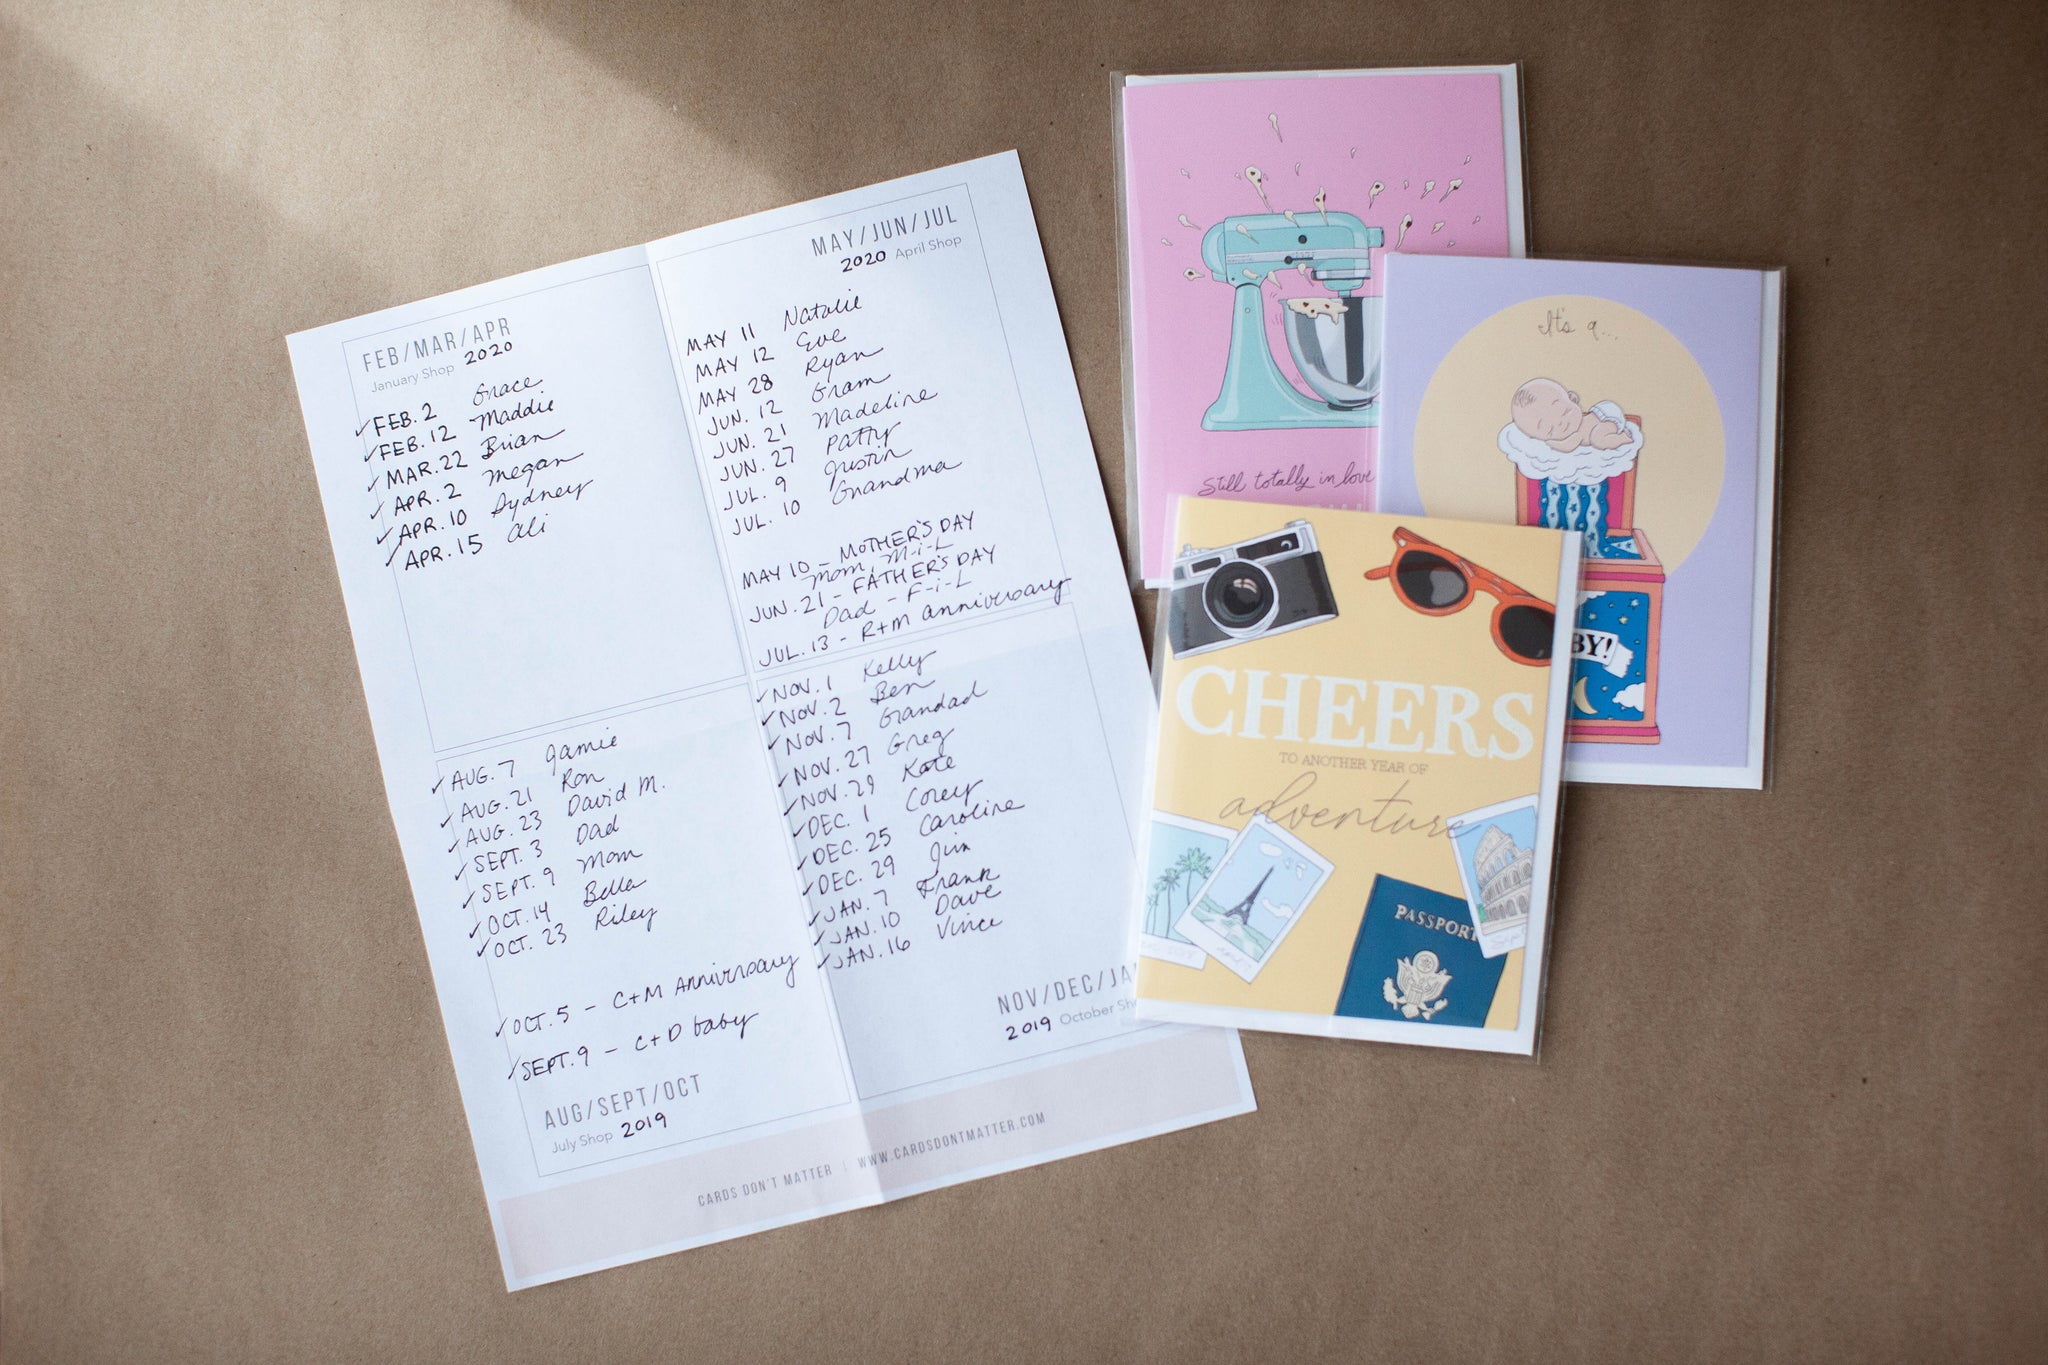 greeting cards next to a Handwritten Love List